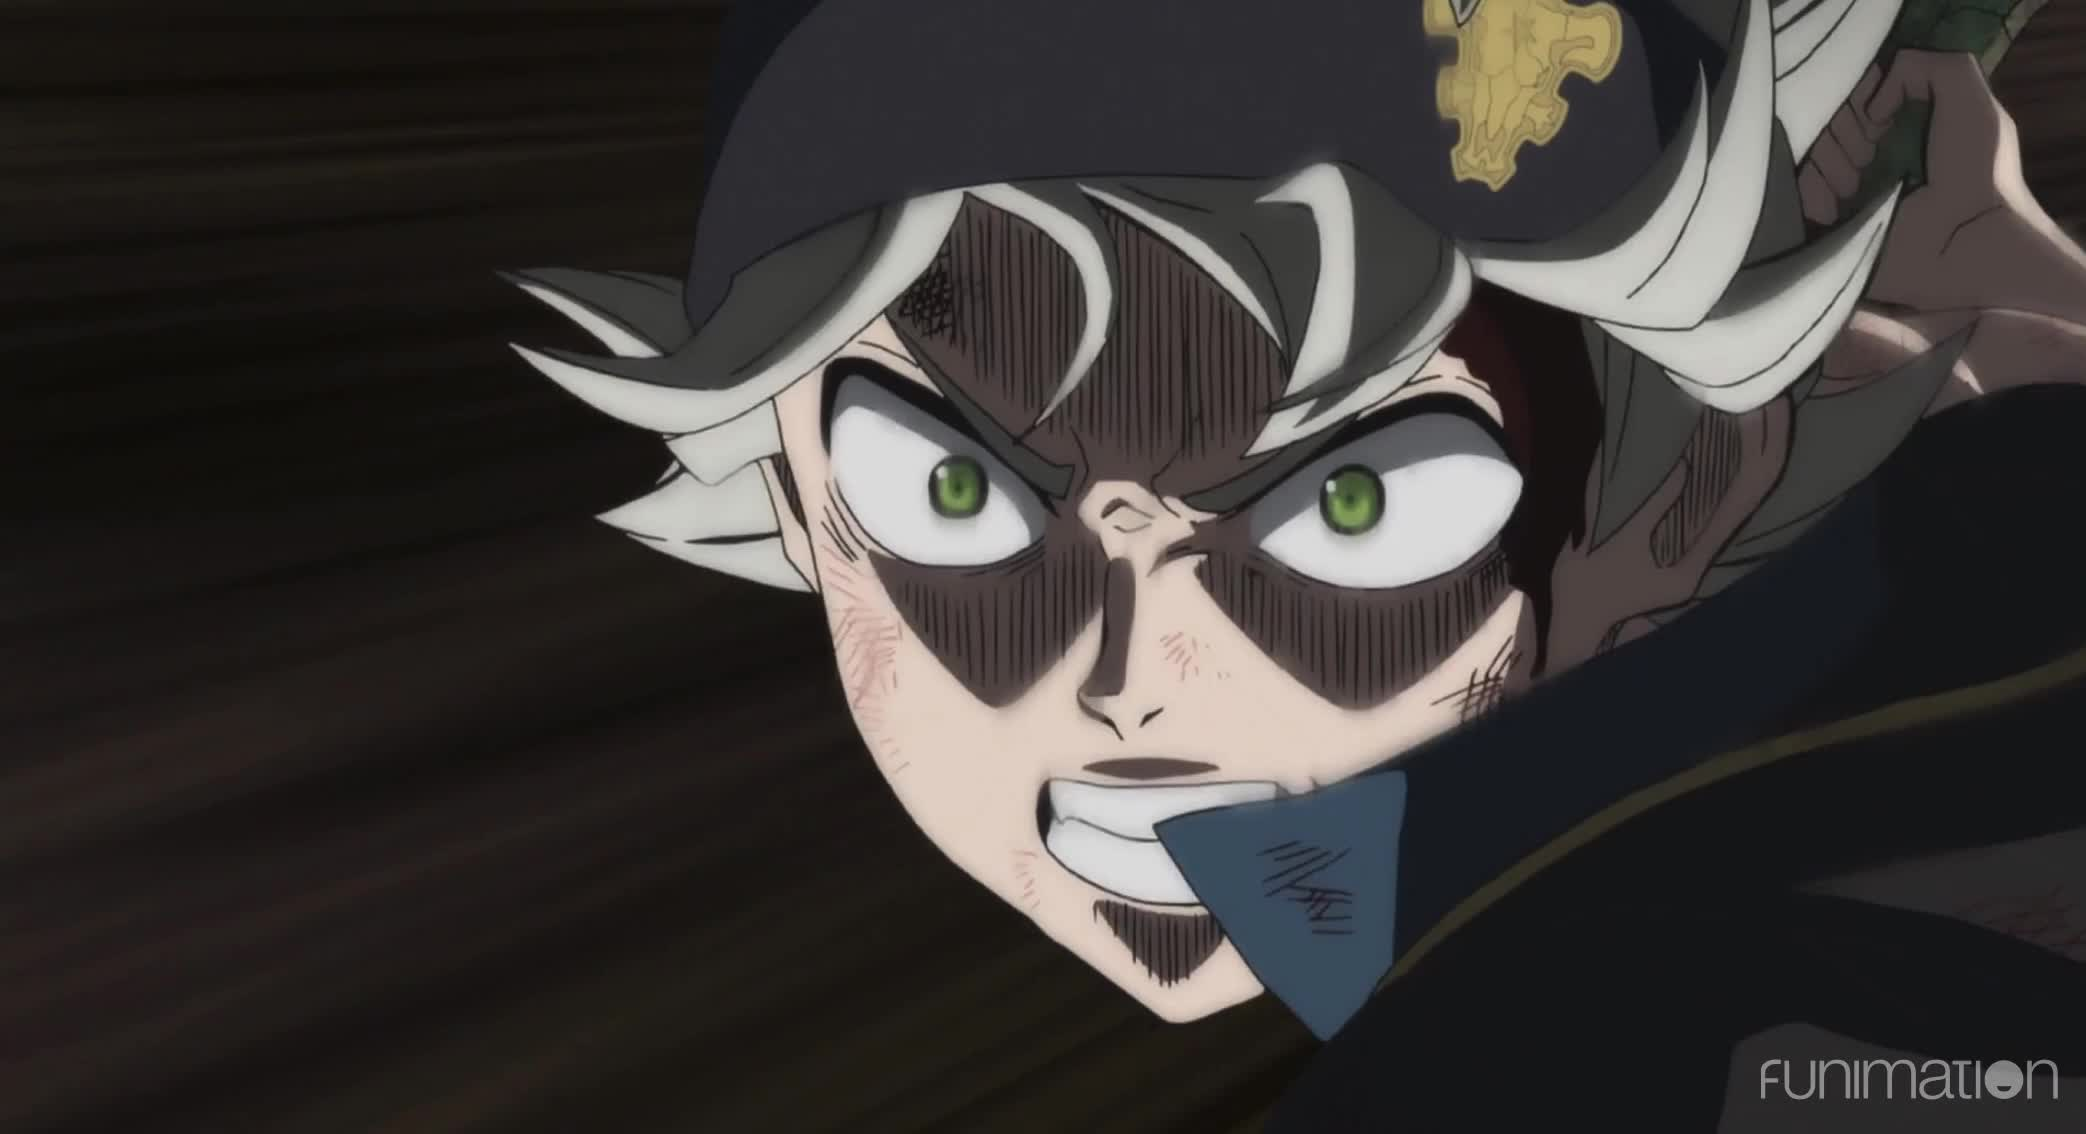 Black Clover, Black Clover Episode 17, Funimation, action, anime, Pebble that shatters the diamond GIFs